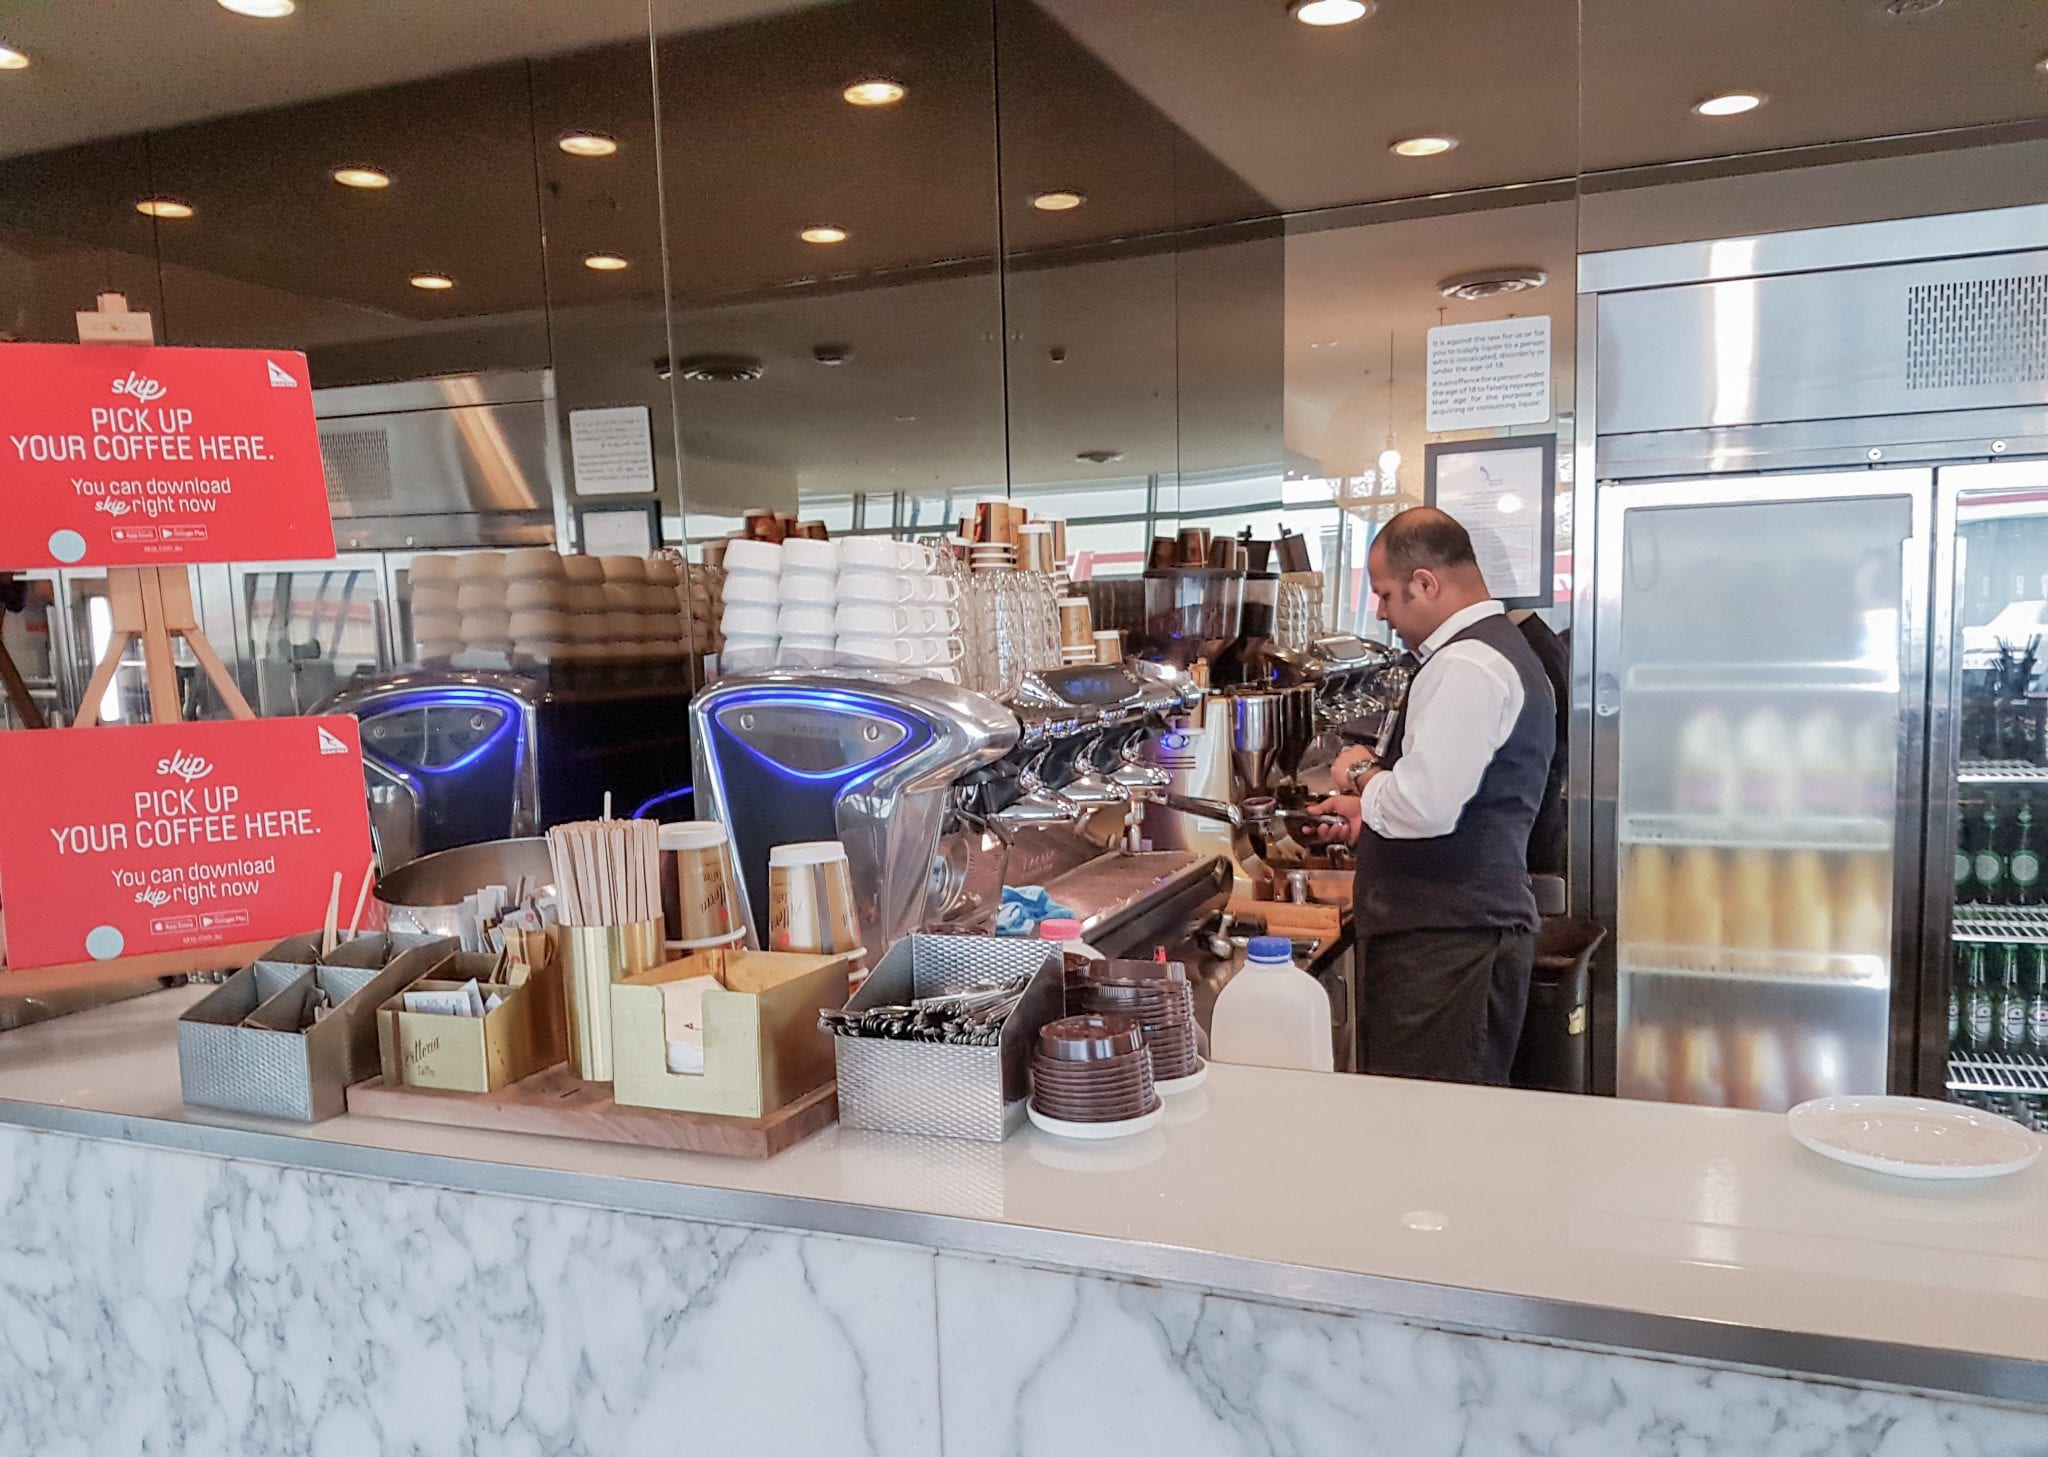 One of my favourite features of Qantas lounges is the freshly made barista coffee...